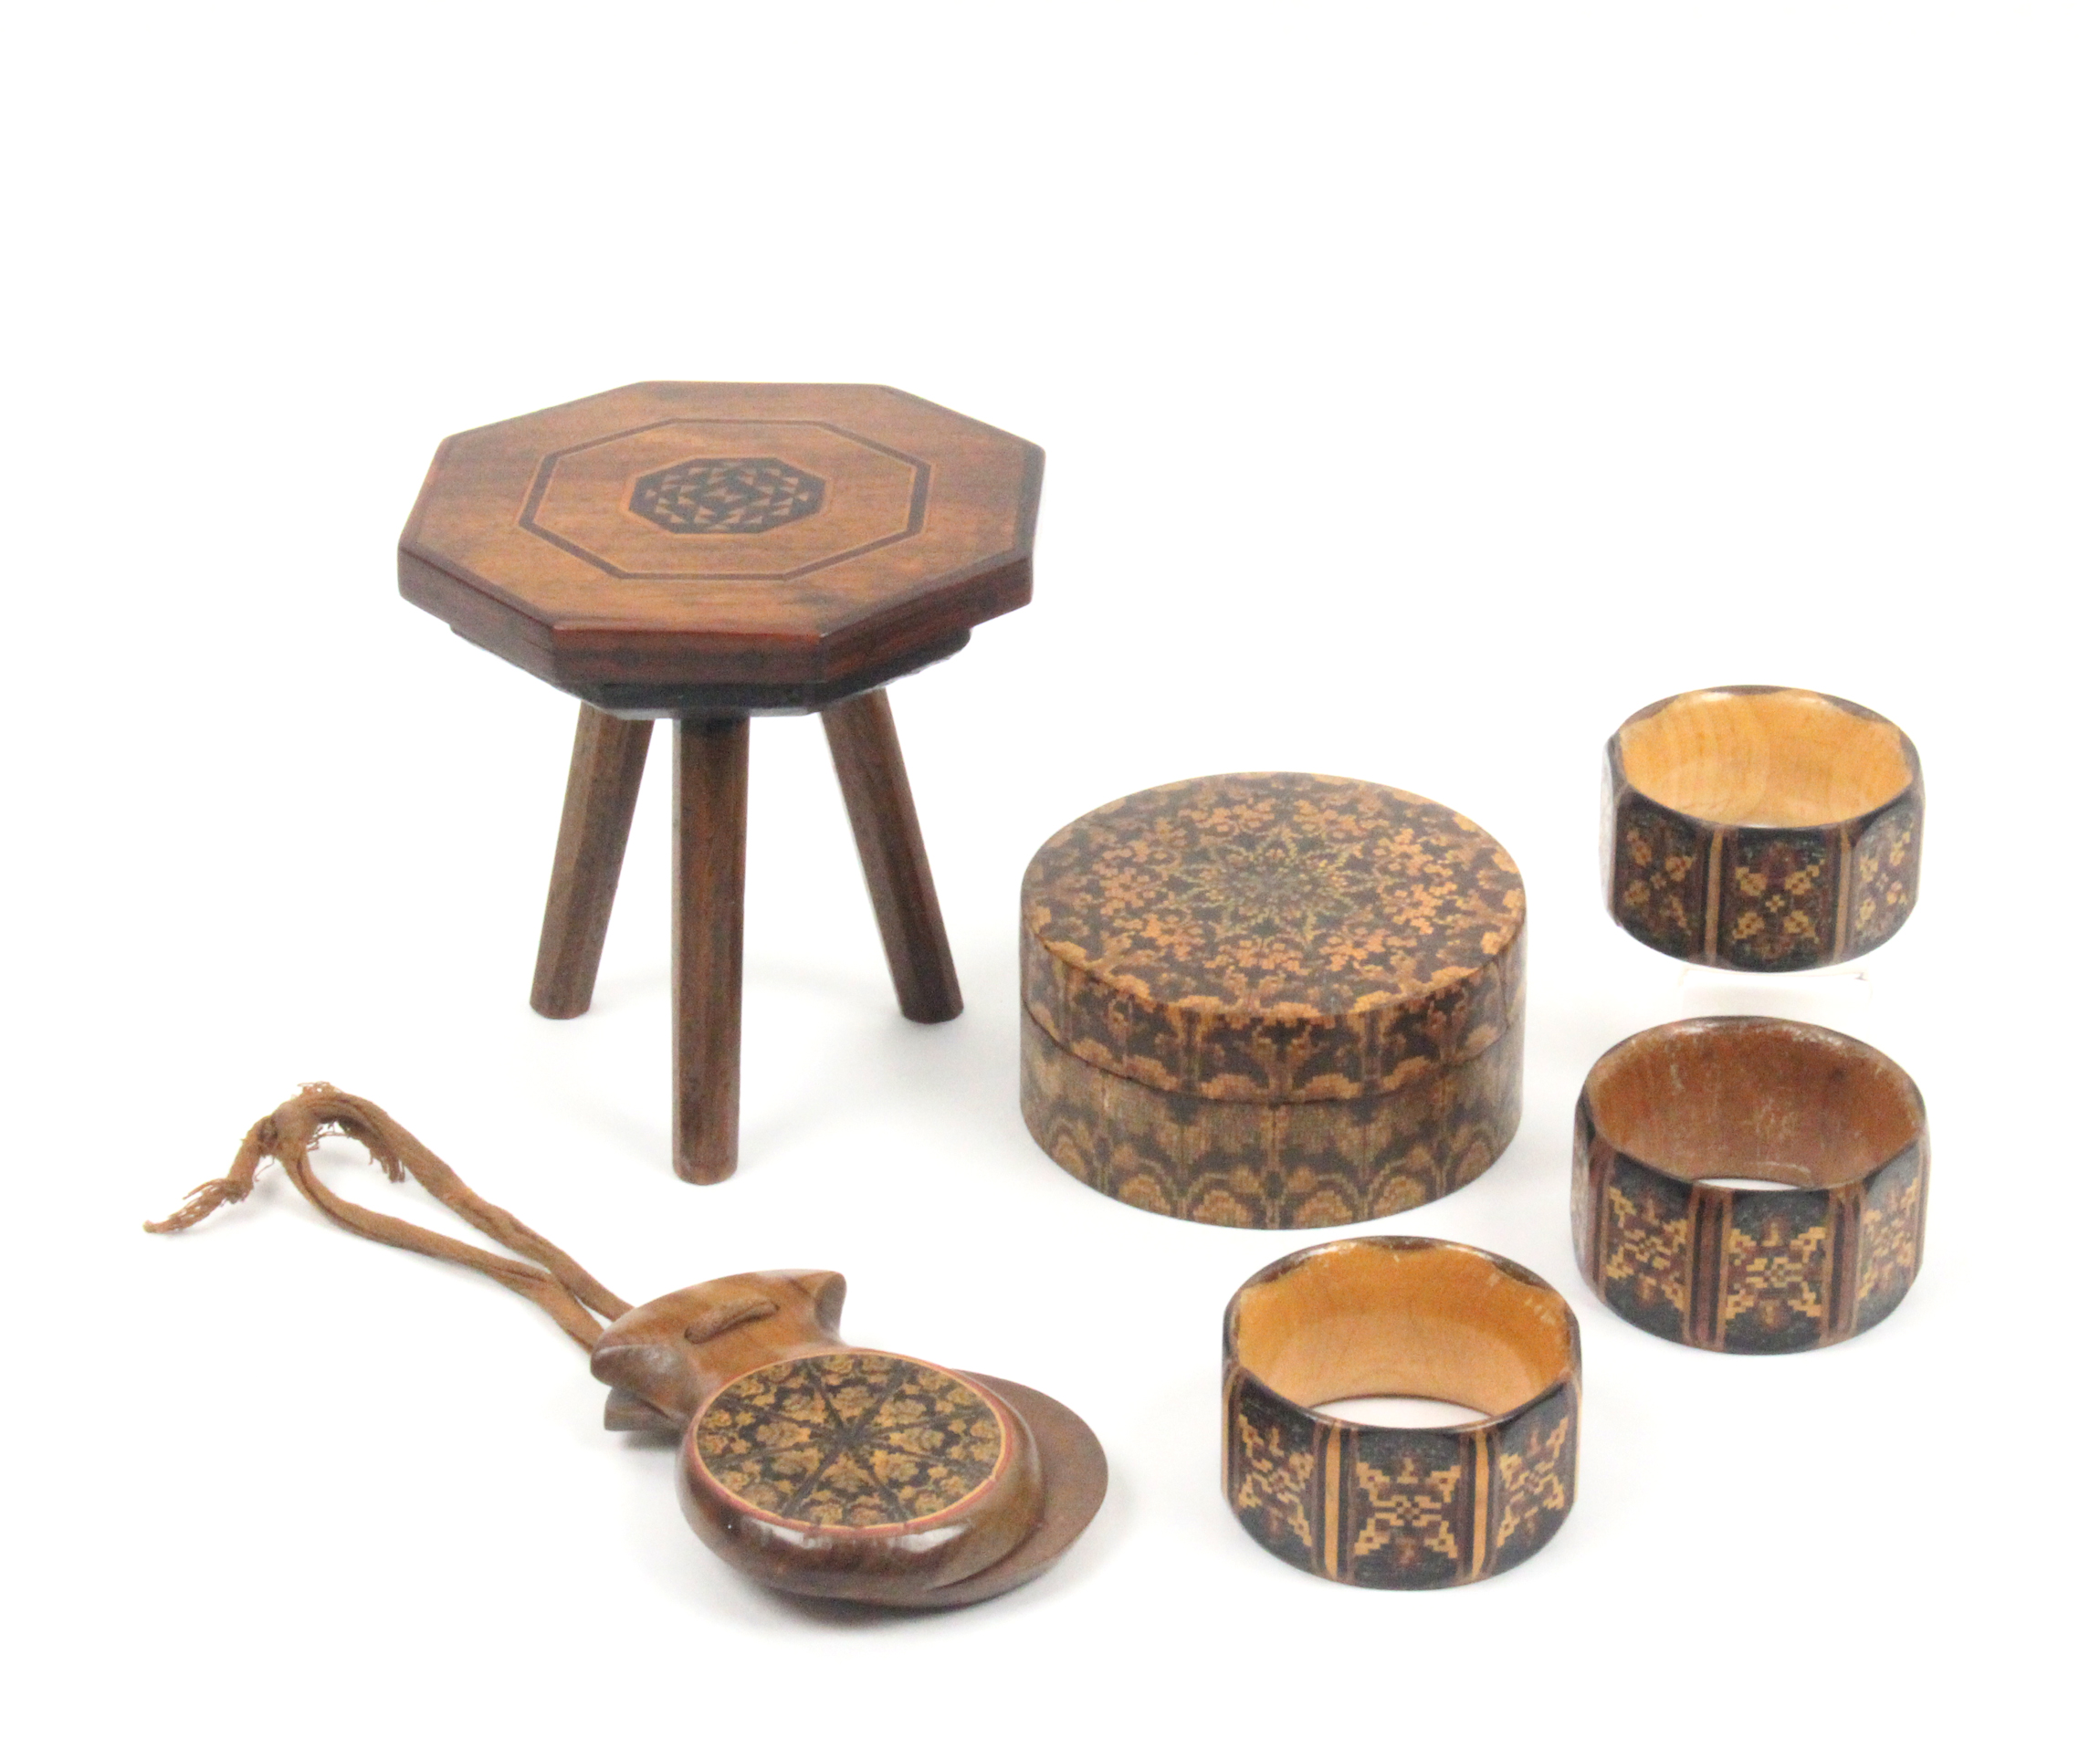 Lot 22 - Tunbridge ware and associated wares - six pieces comprising three Tunbridge ware napkin rings of